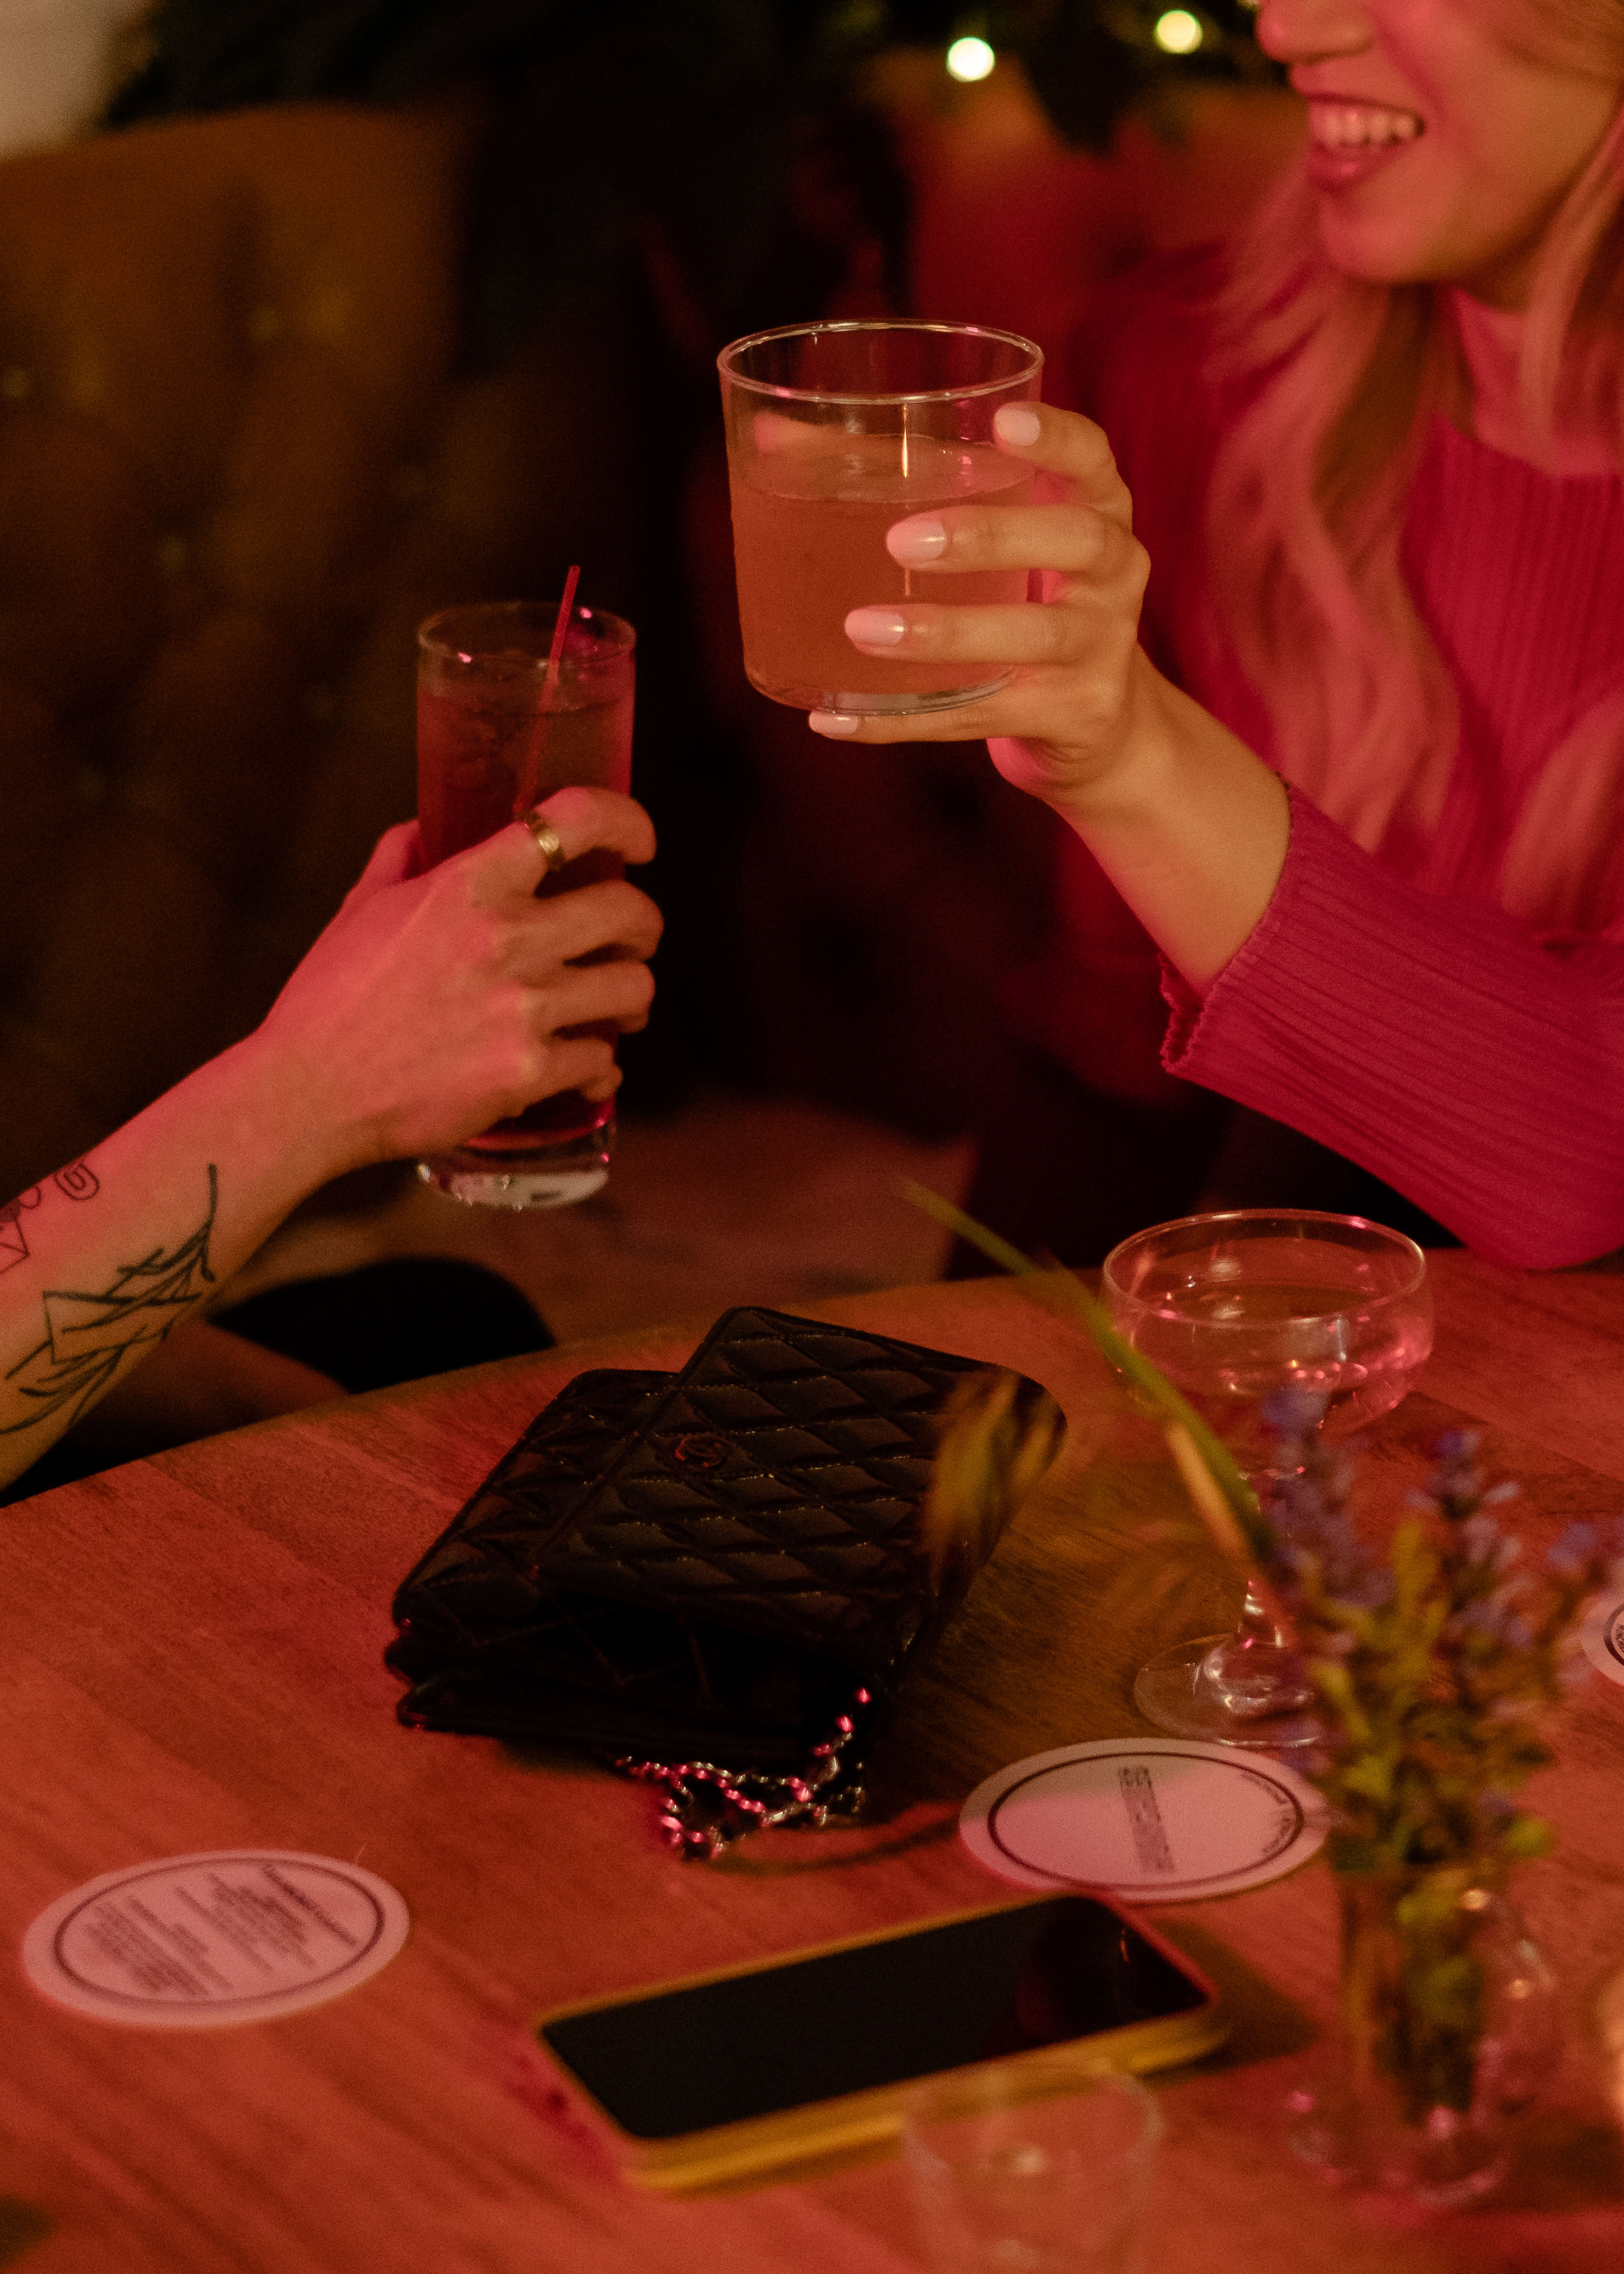 A transfeminine person having drinks with friends